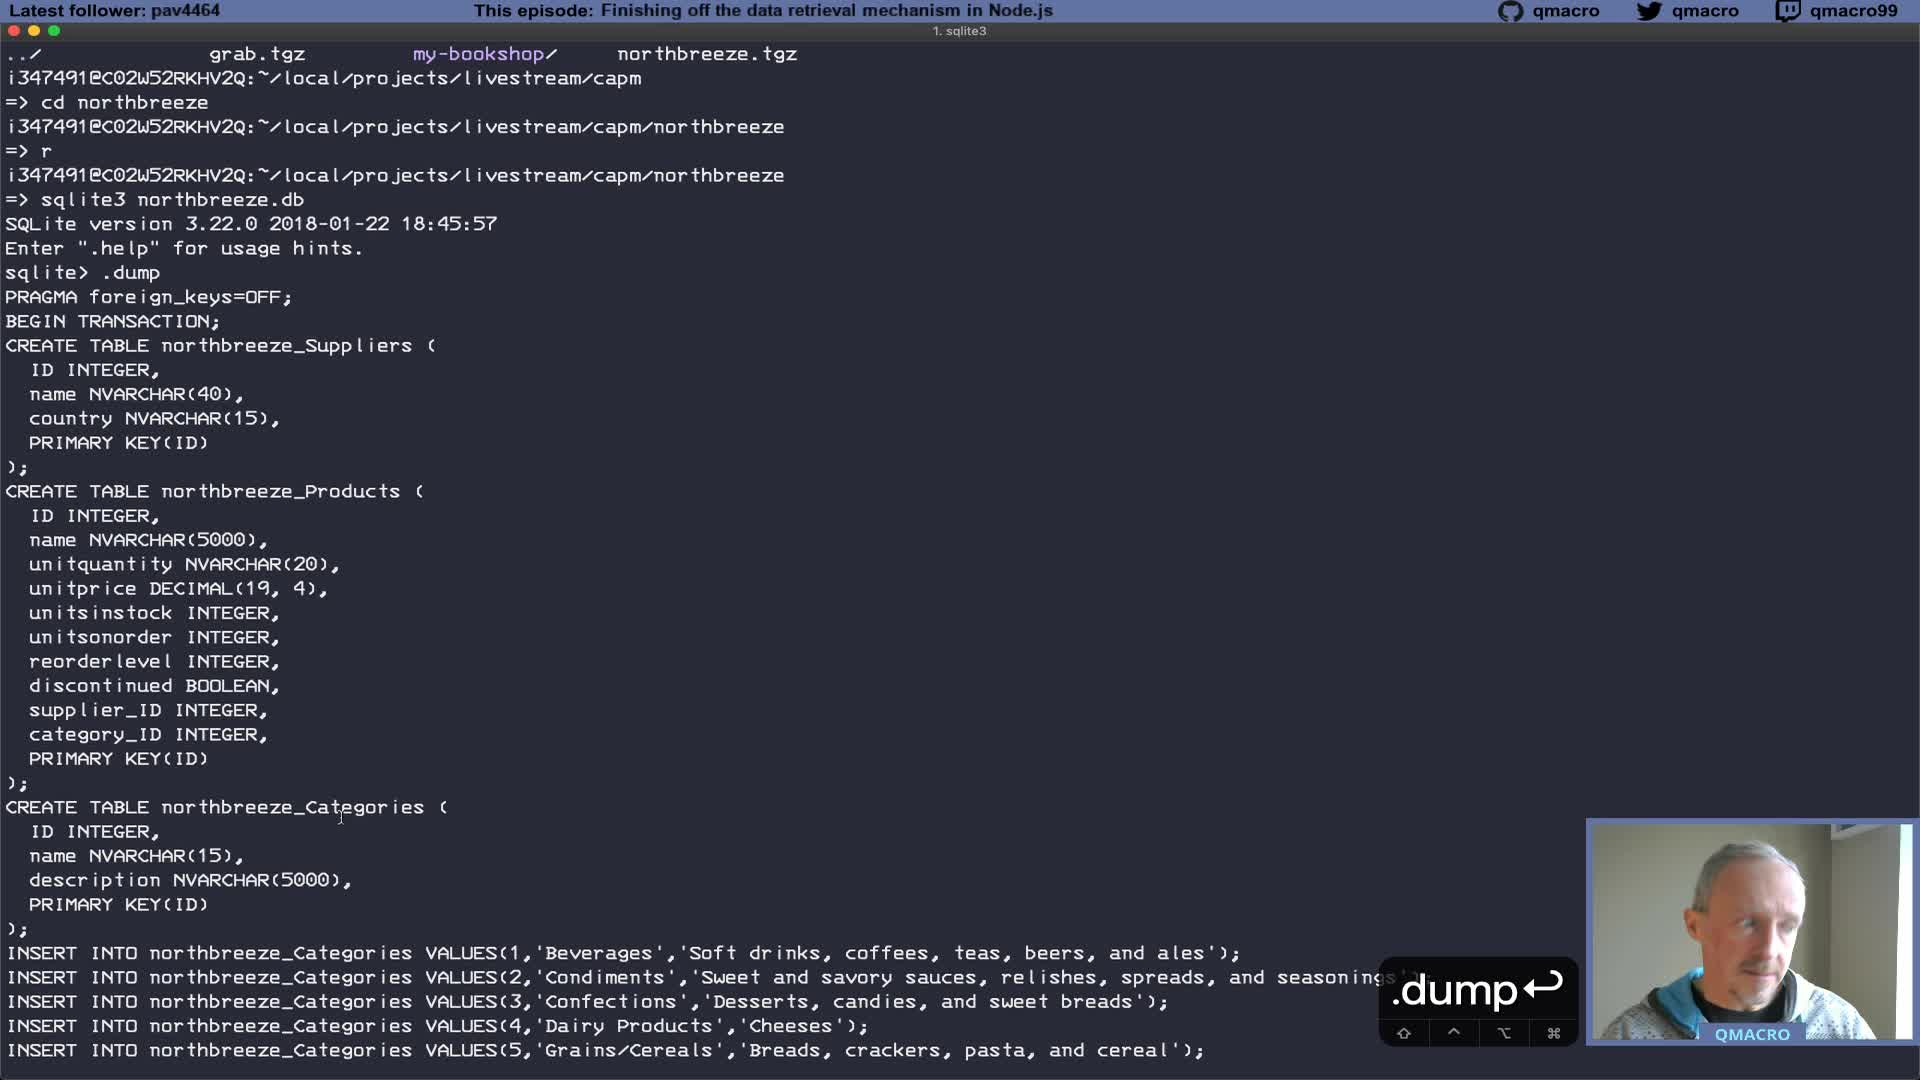 qmacro99 - Hands-on SAP dev with qmacro - Twitch